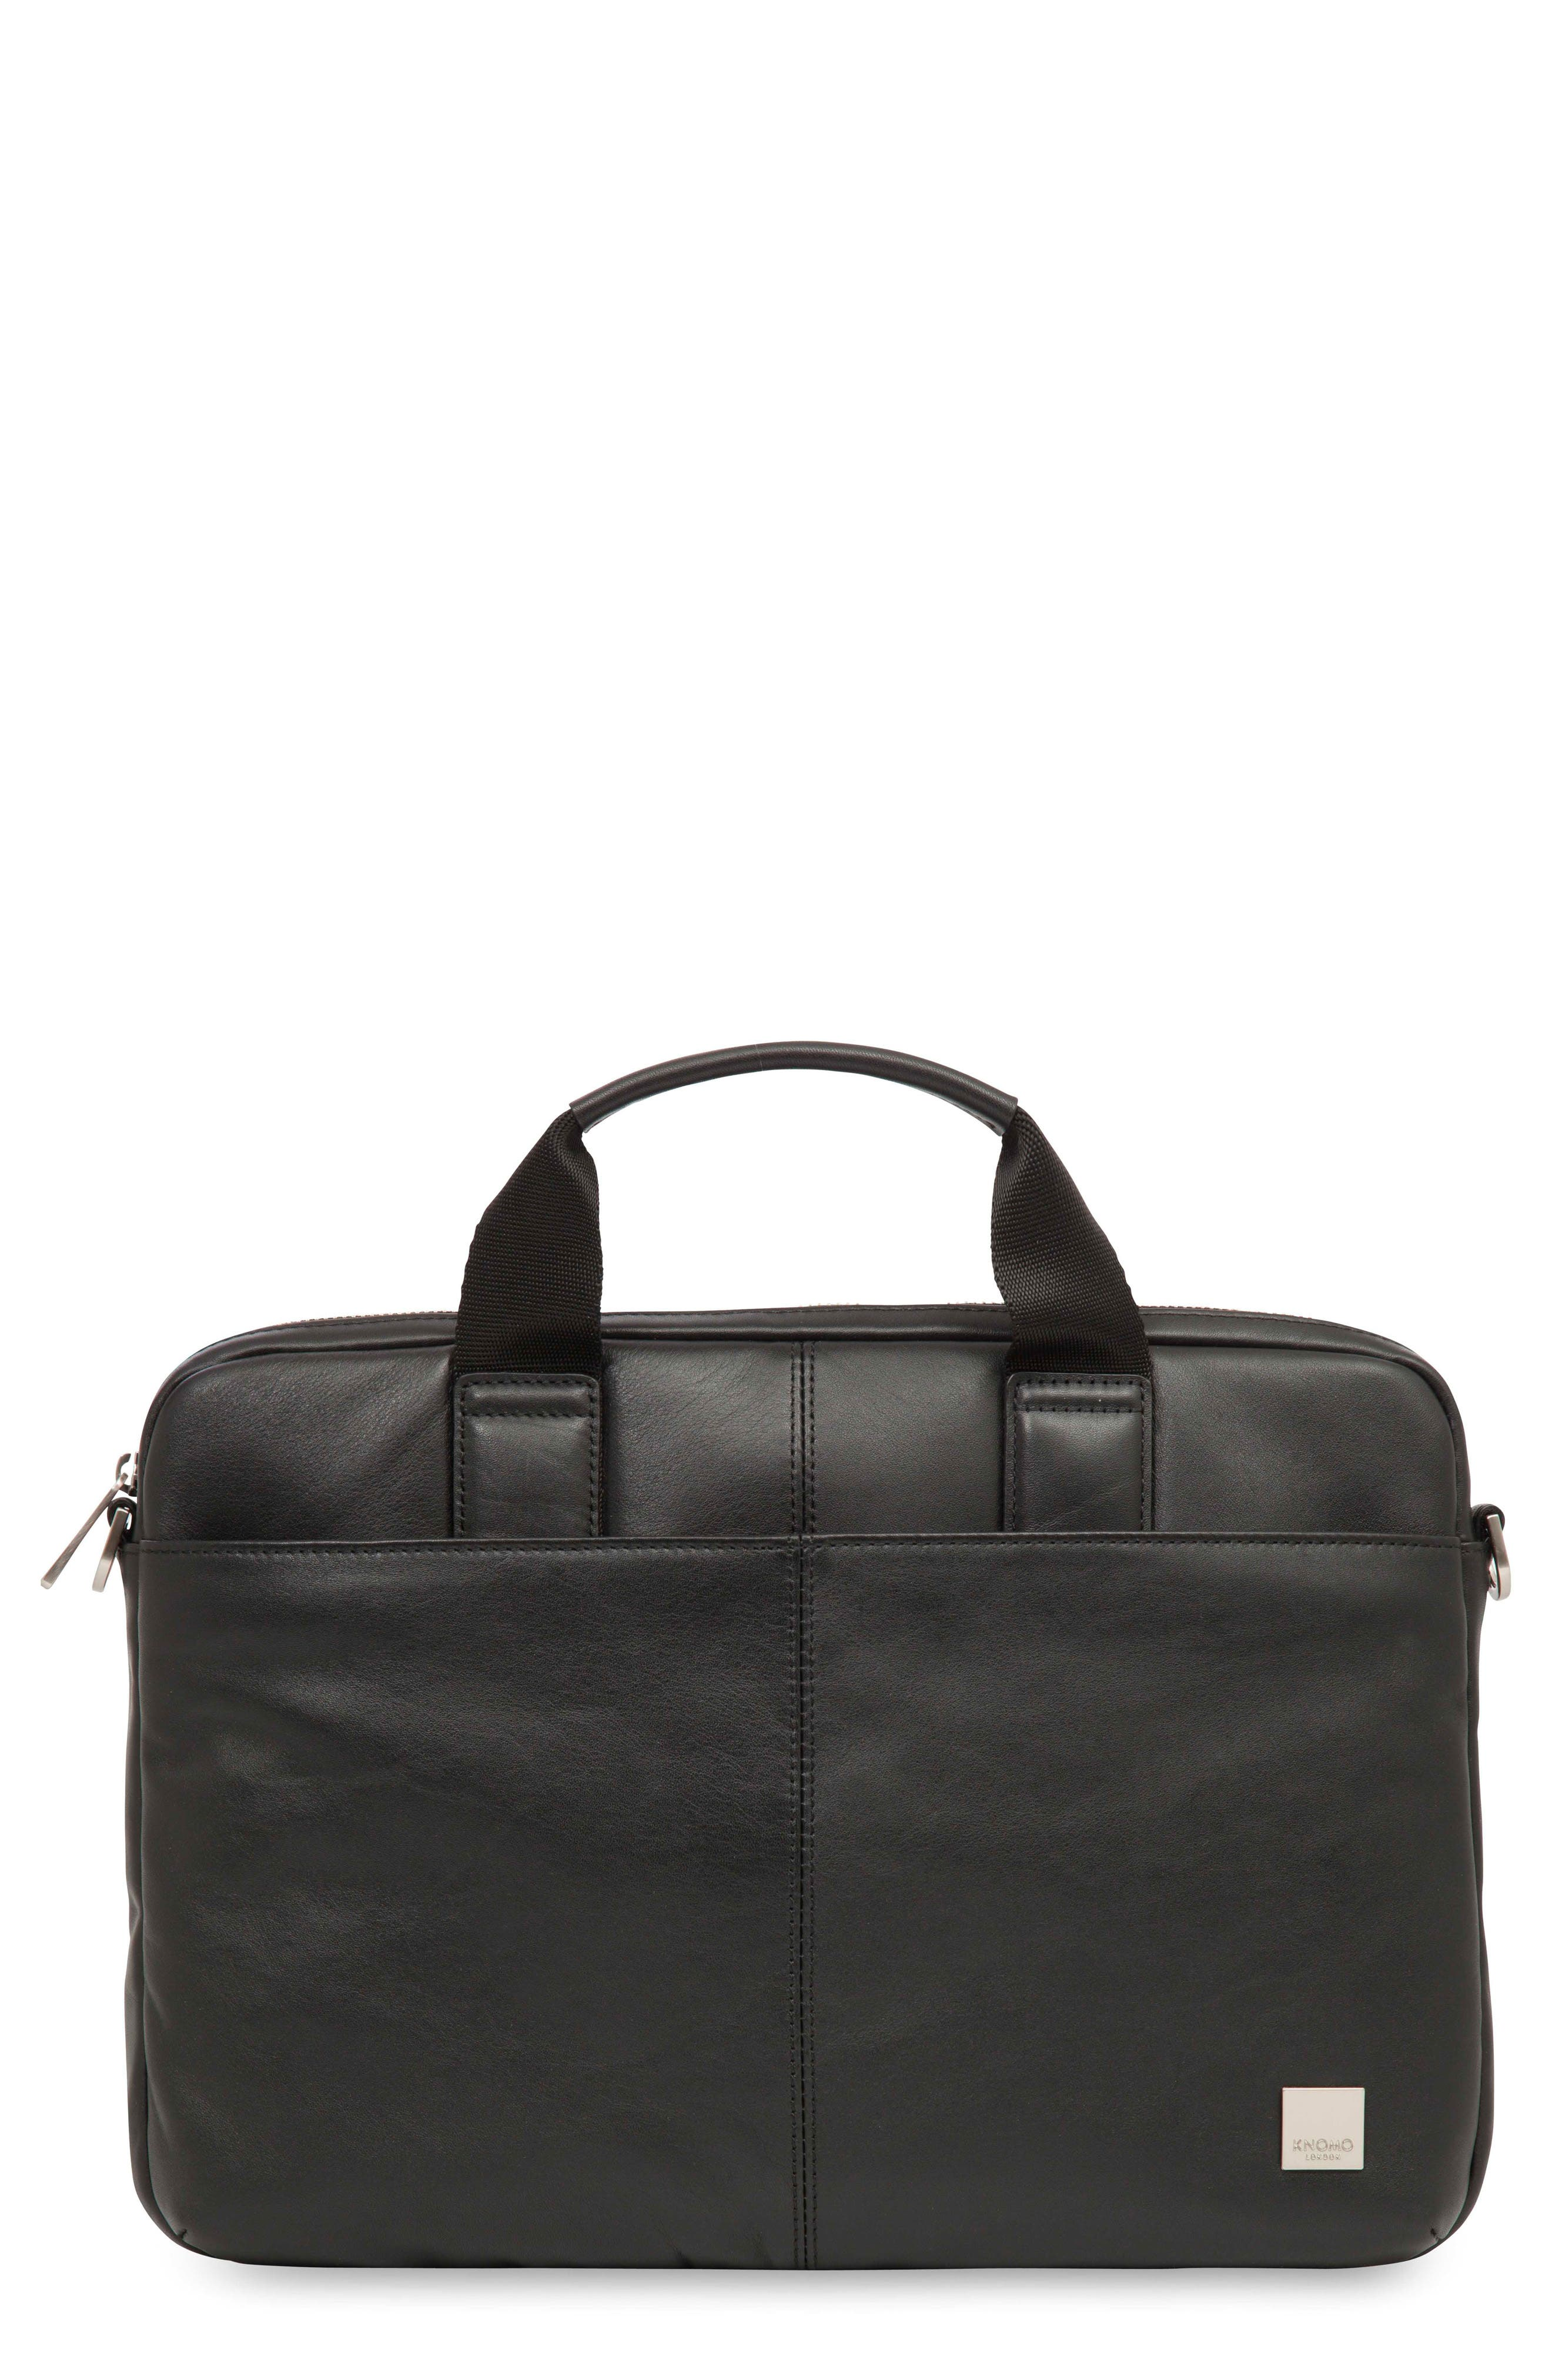 Brompton Stanford RFID Leather Briefcase,                         Main,                         color, 001